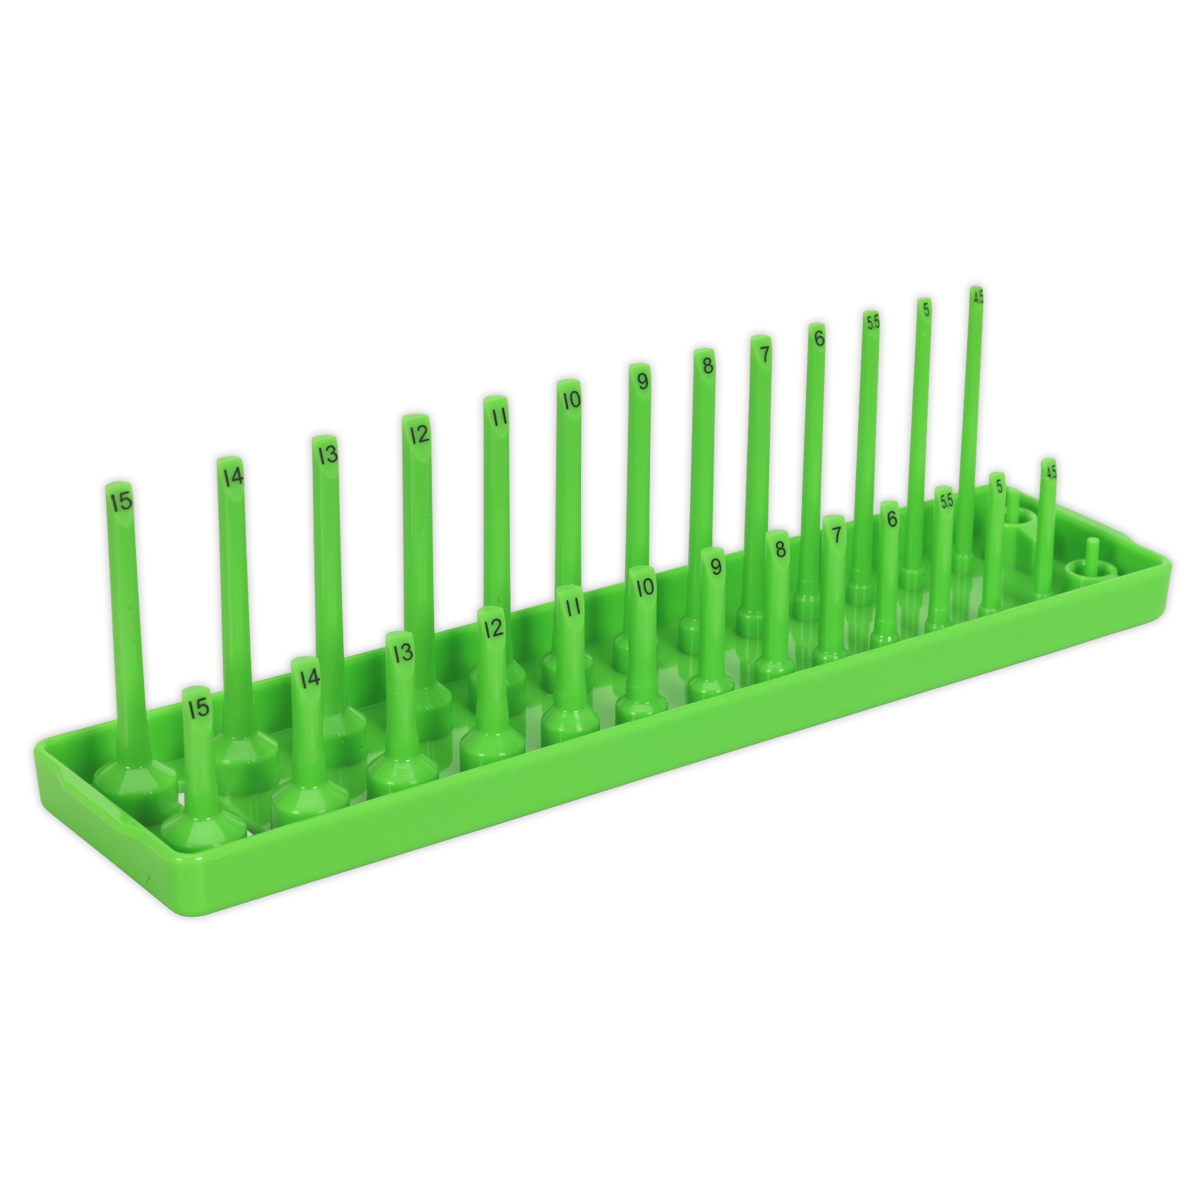 """Socket Holder 1/4""""Sq Drive 4-15mm Hi-Vis Green   Allows you to maintain a tidy workstation with sockets always to hand.   toolforce.ie"""